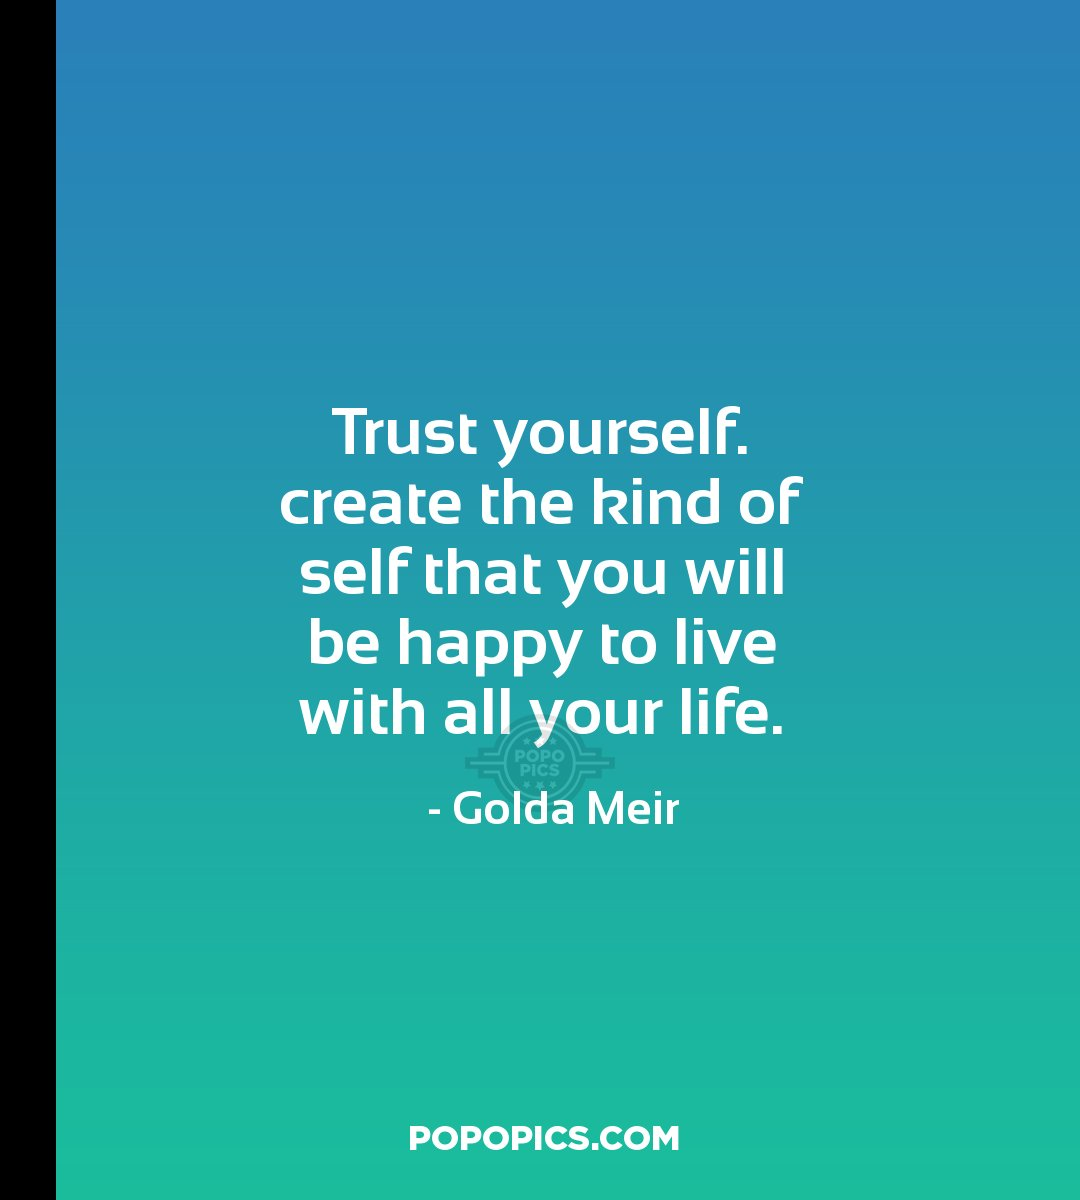 Picture Golda Meir Quote About Trust: Trust Yourself. Create The Kind Of Self That You